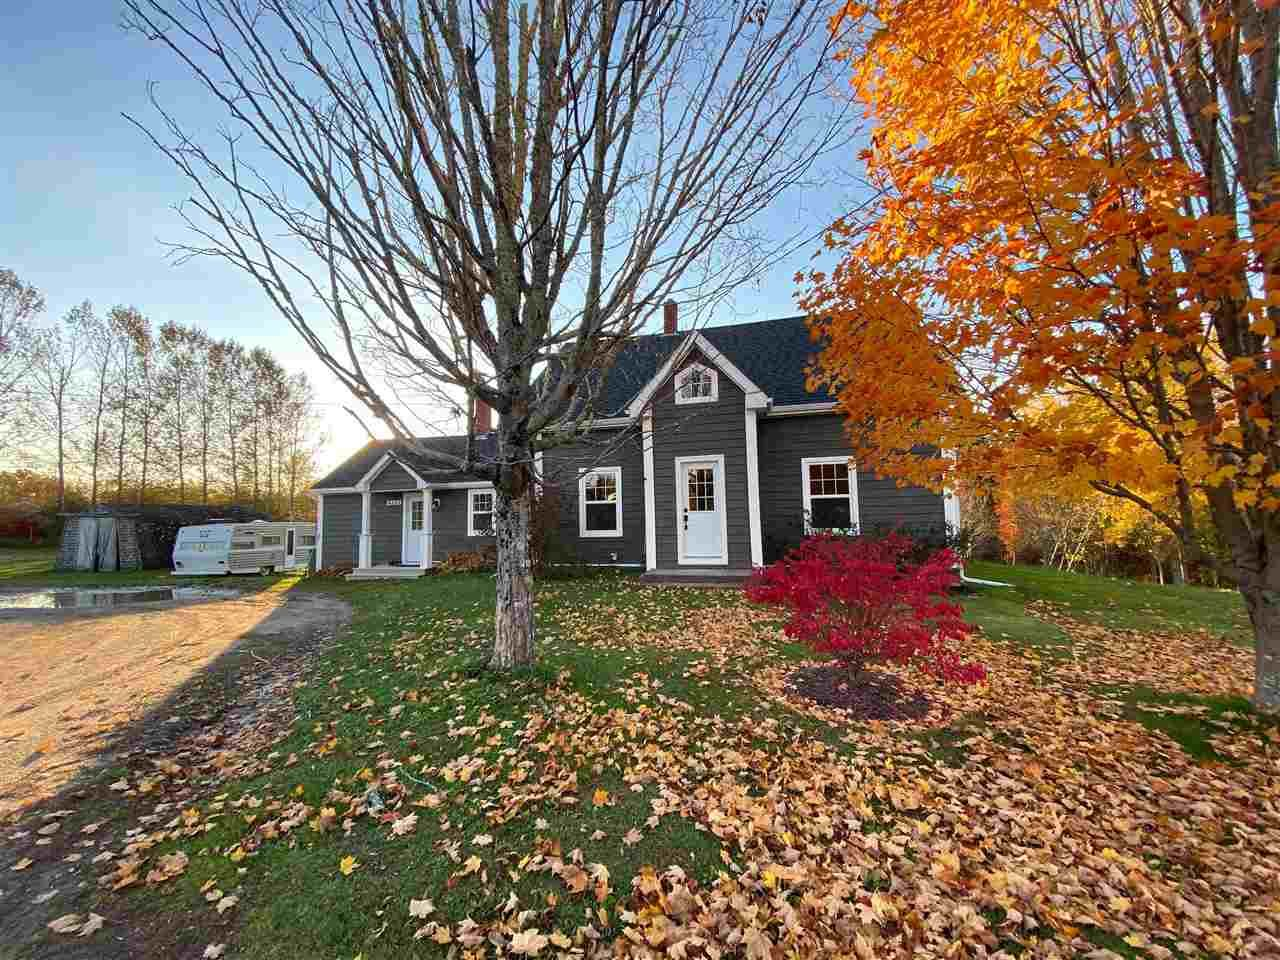 Main Photo: 4333 Highway 12 in South Alton: 404-Kings County Residential for sale (Annapolis Valley)  : MLS®# 202021985